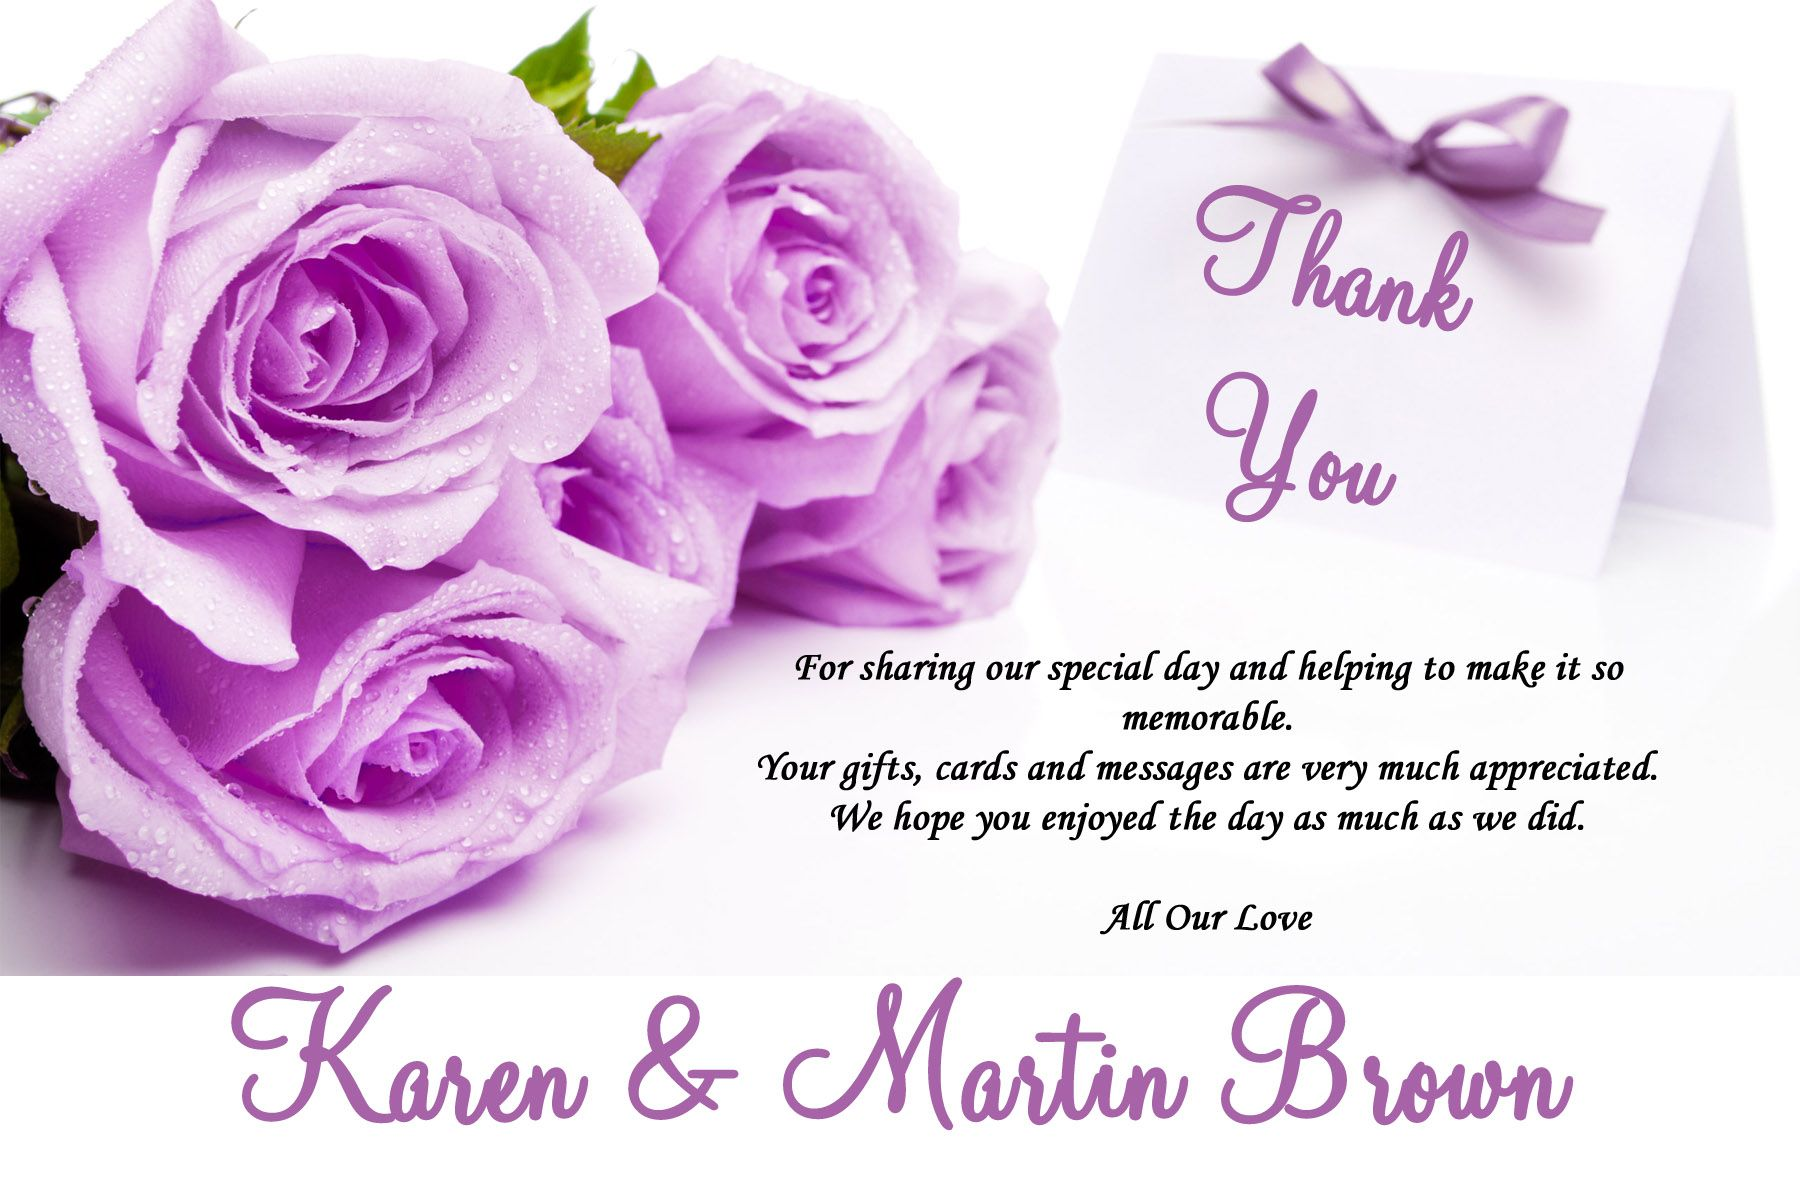 How to create Thank you card designs templates ideas – Thank You Card Template